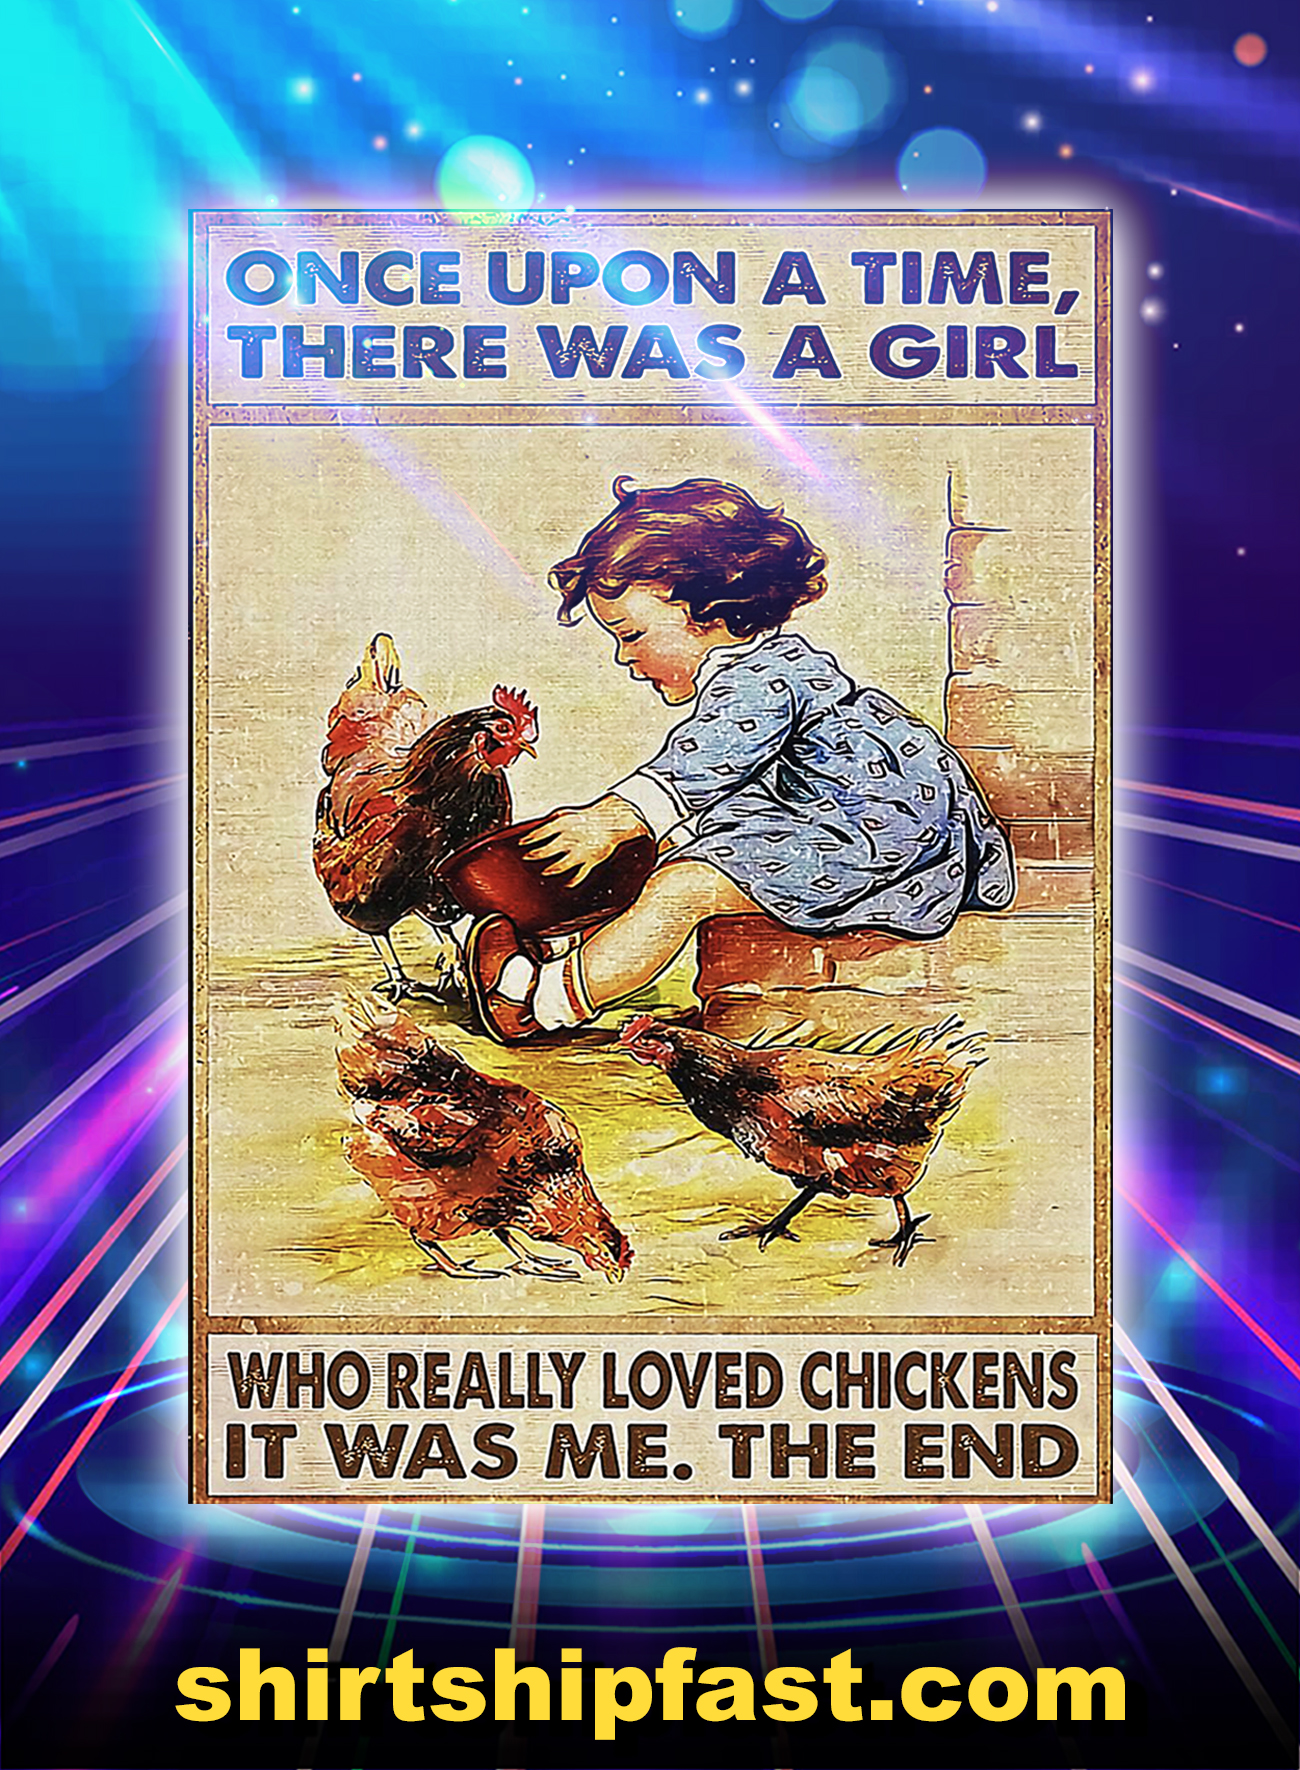 Once upon a time there was a girl who really loved chickens poster - A1